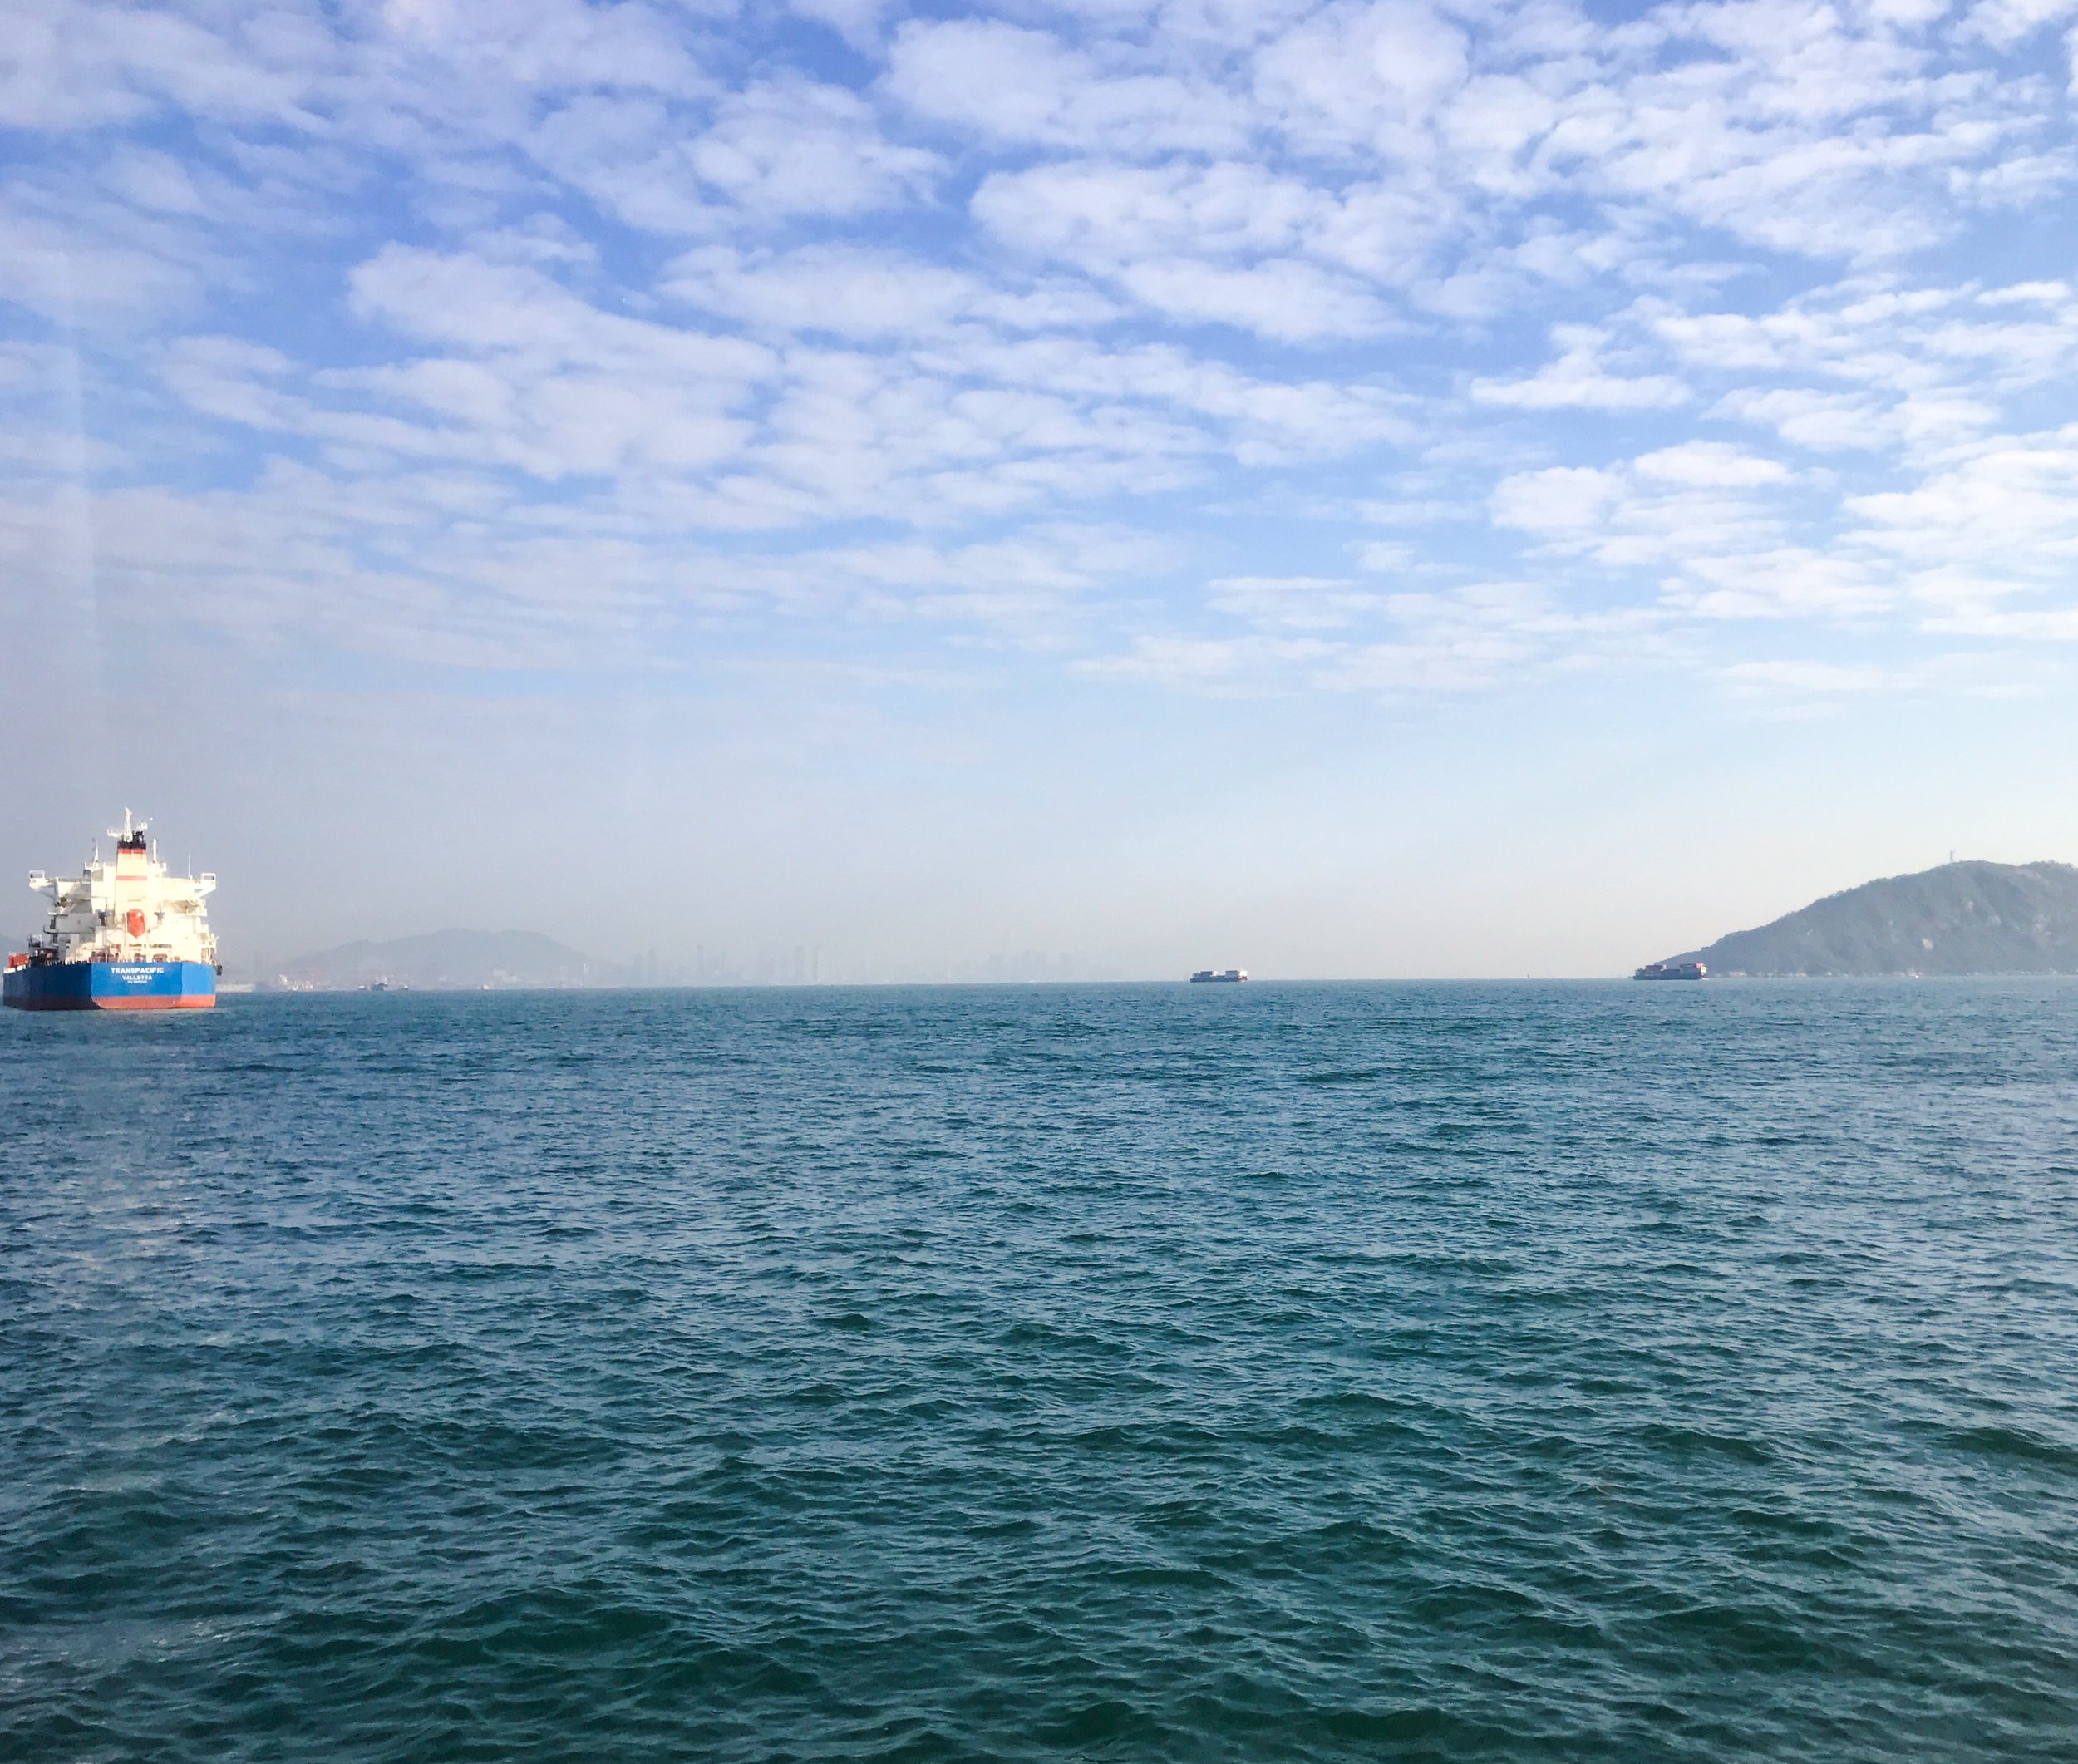 Leaving the competition in Macao I took a very early morning ferry to Hong Kong harbor, where I was able to catch this serene view.